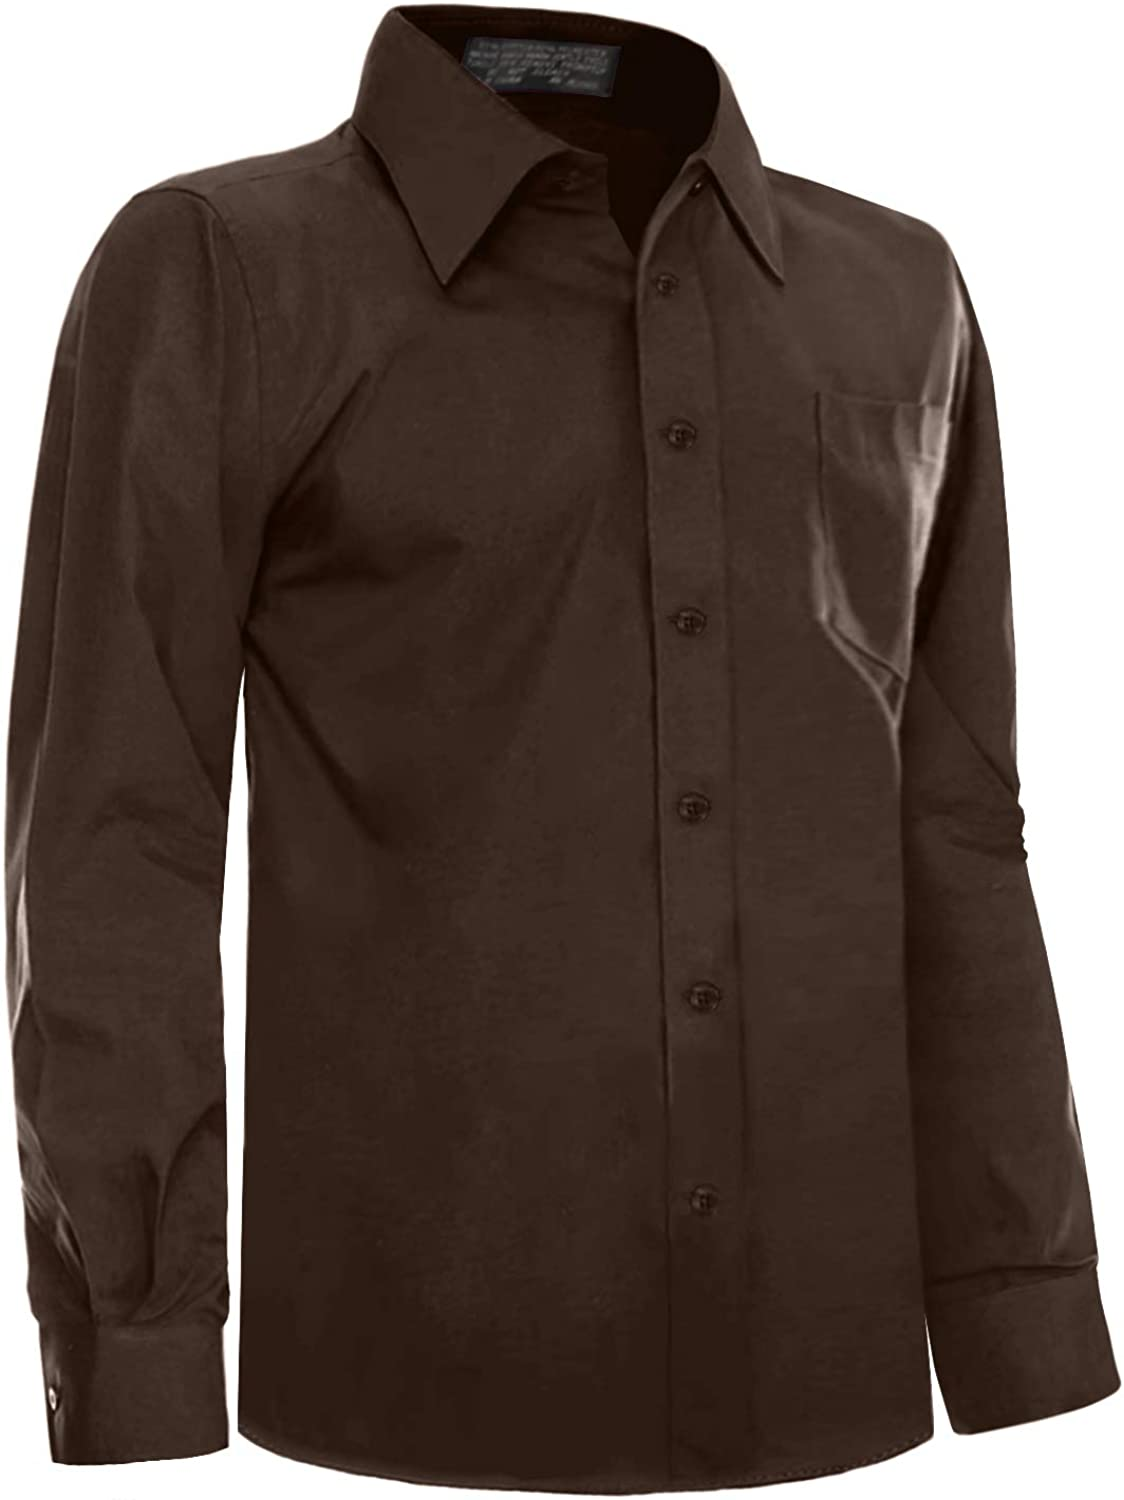 NE PEOPLE Mens Classic Regular Fit Button Down Long Sleeve Solid Color Dress Shirts S-5XL